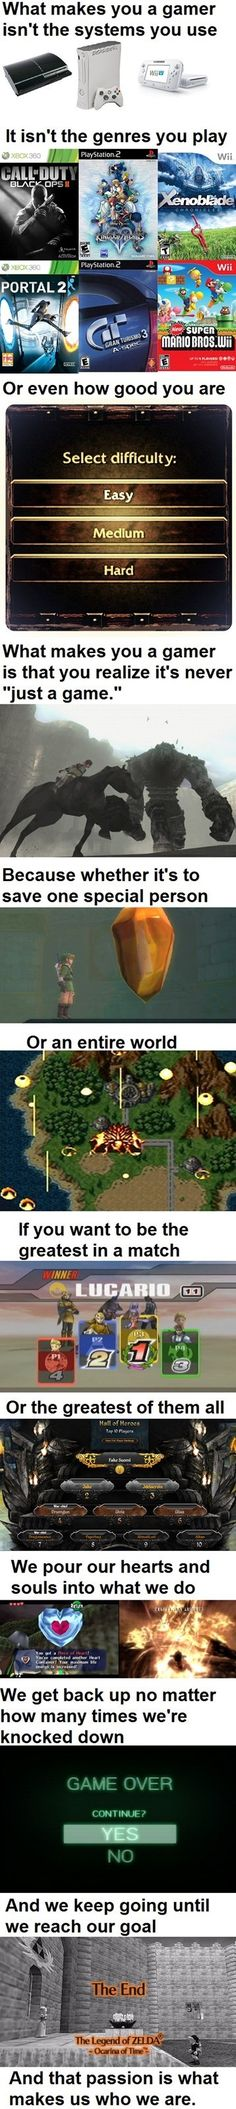 What Makes One a Gamer